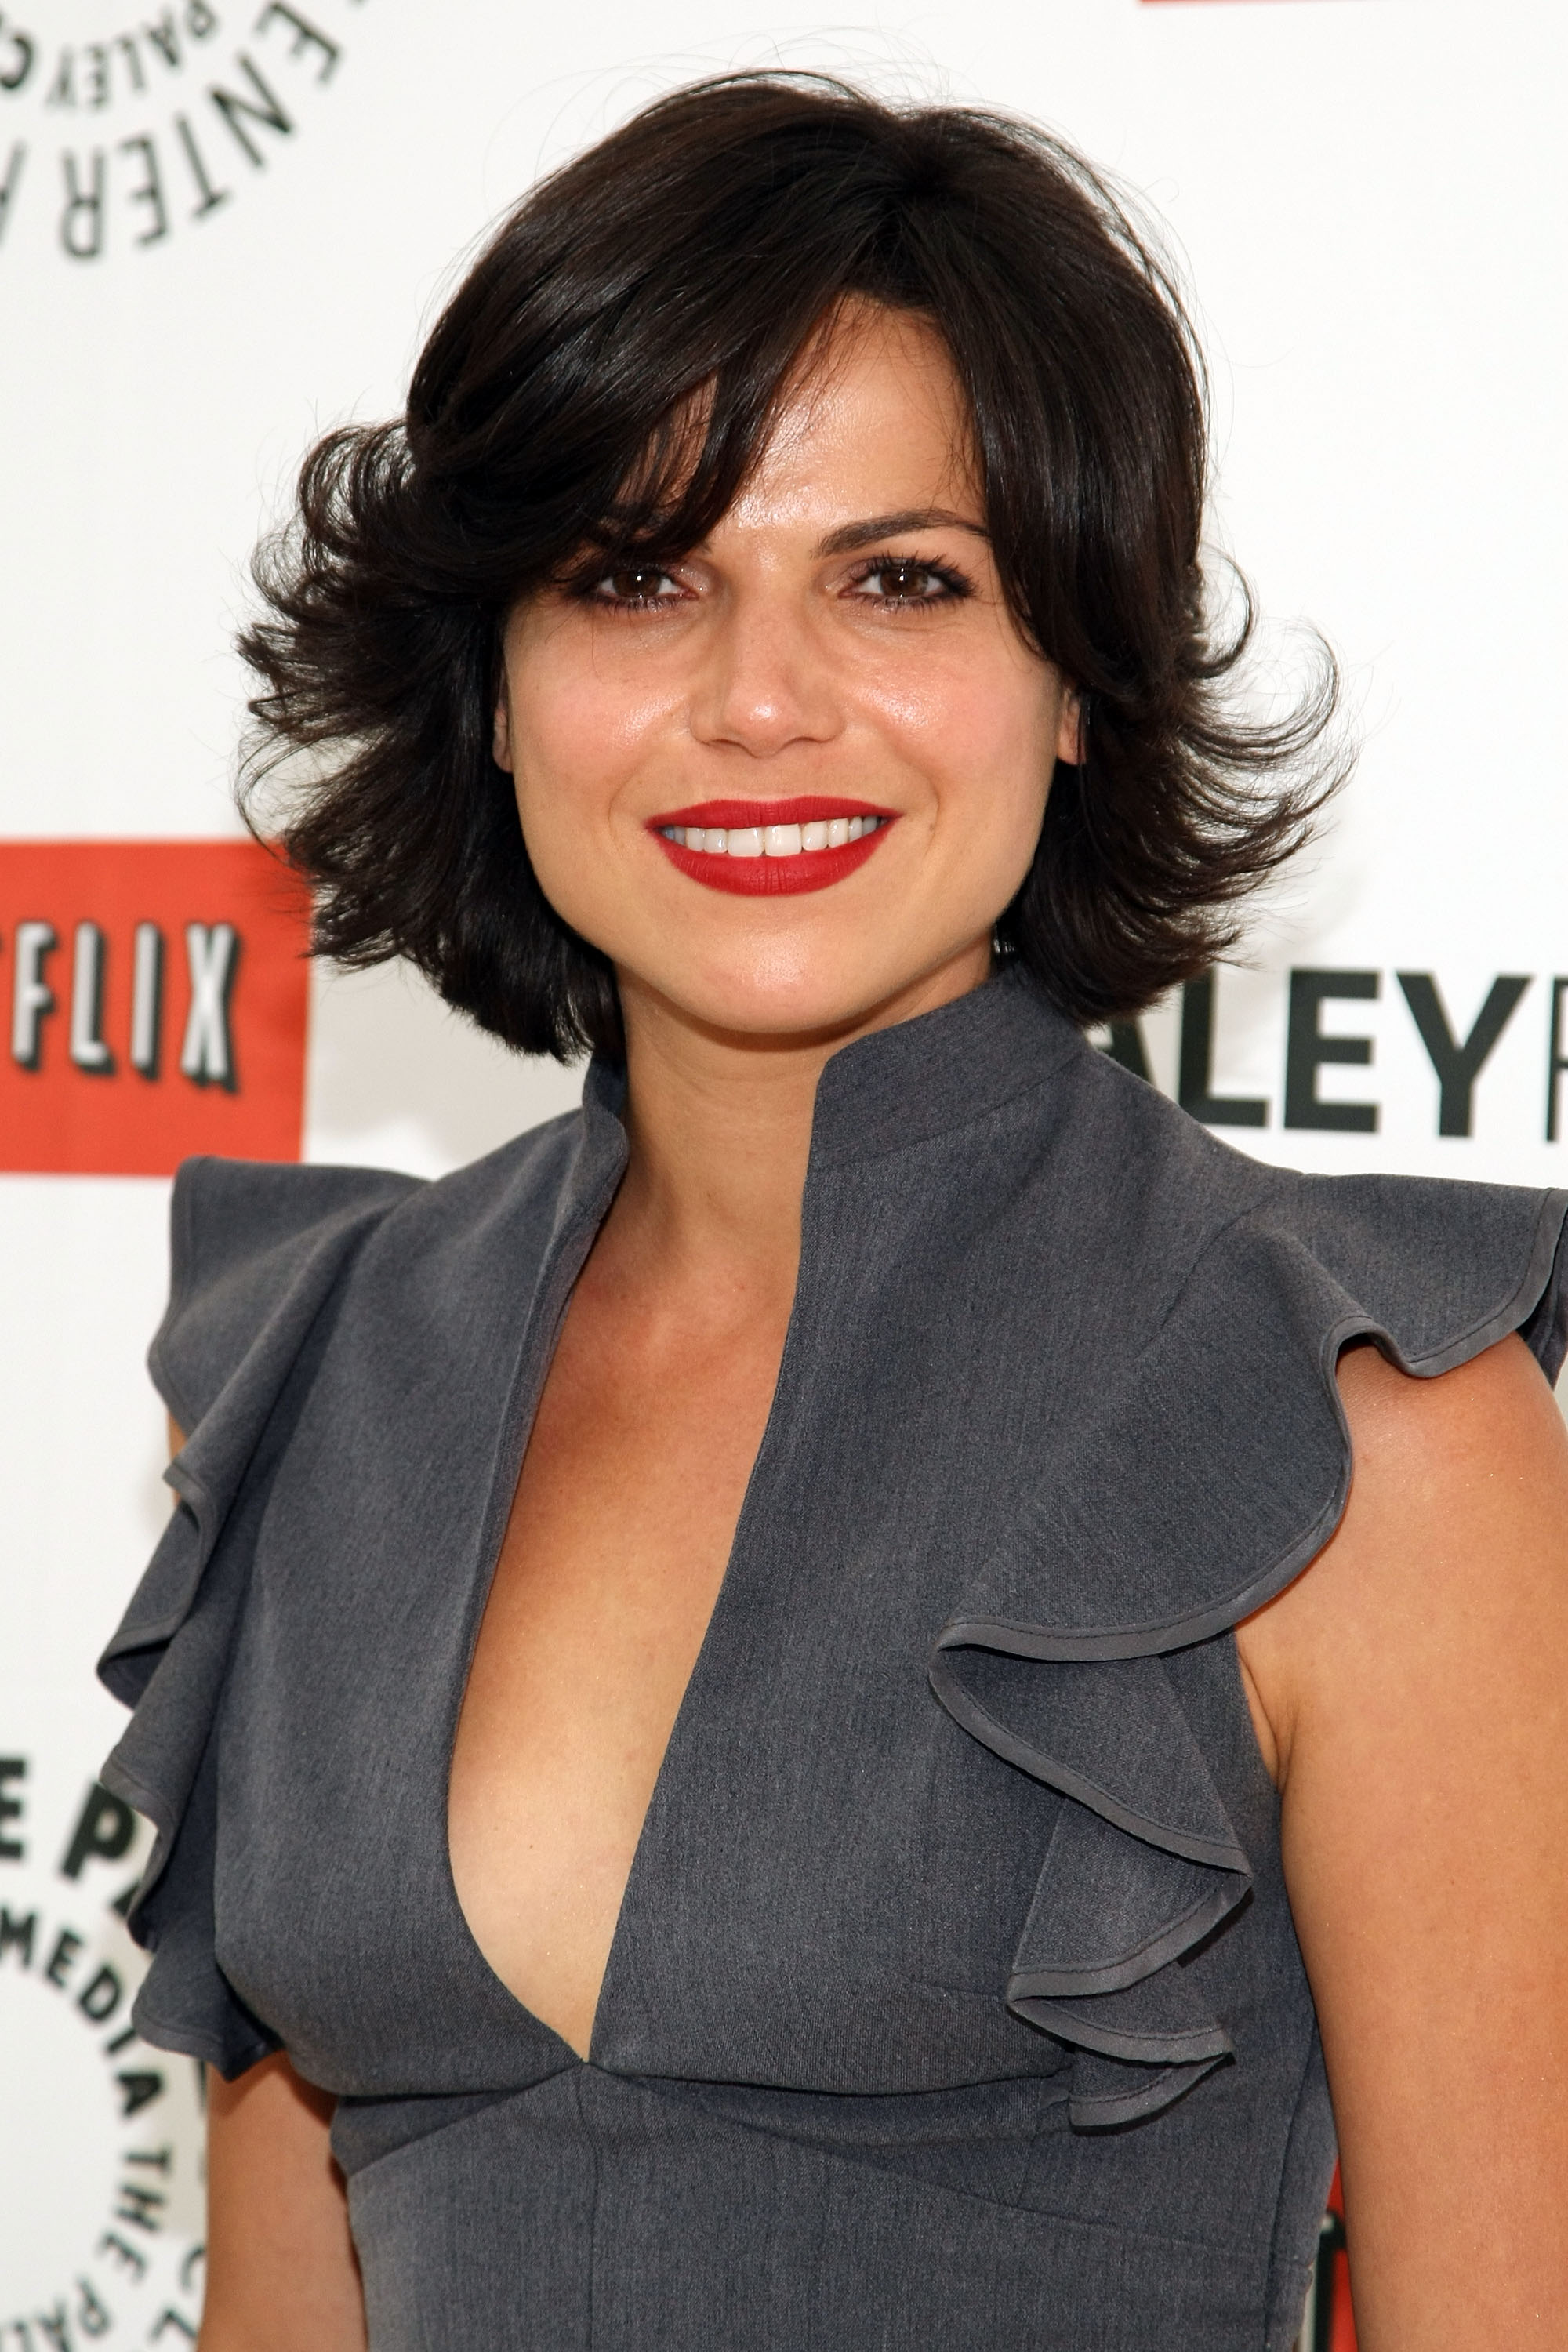 The 40-year old daughter of father Sam Parrilla and mother(?), 164 cm tall Lana Parrilla in 2018 photo